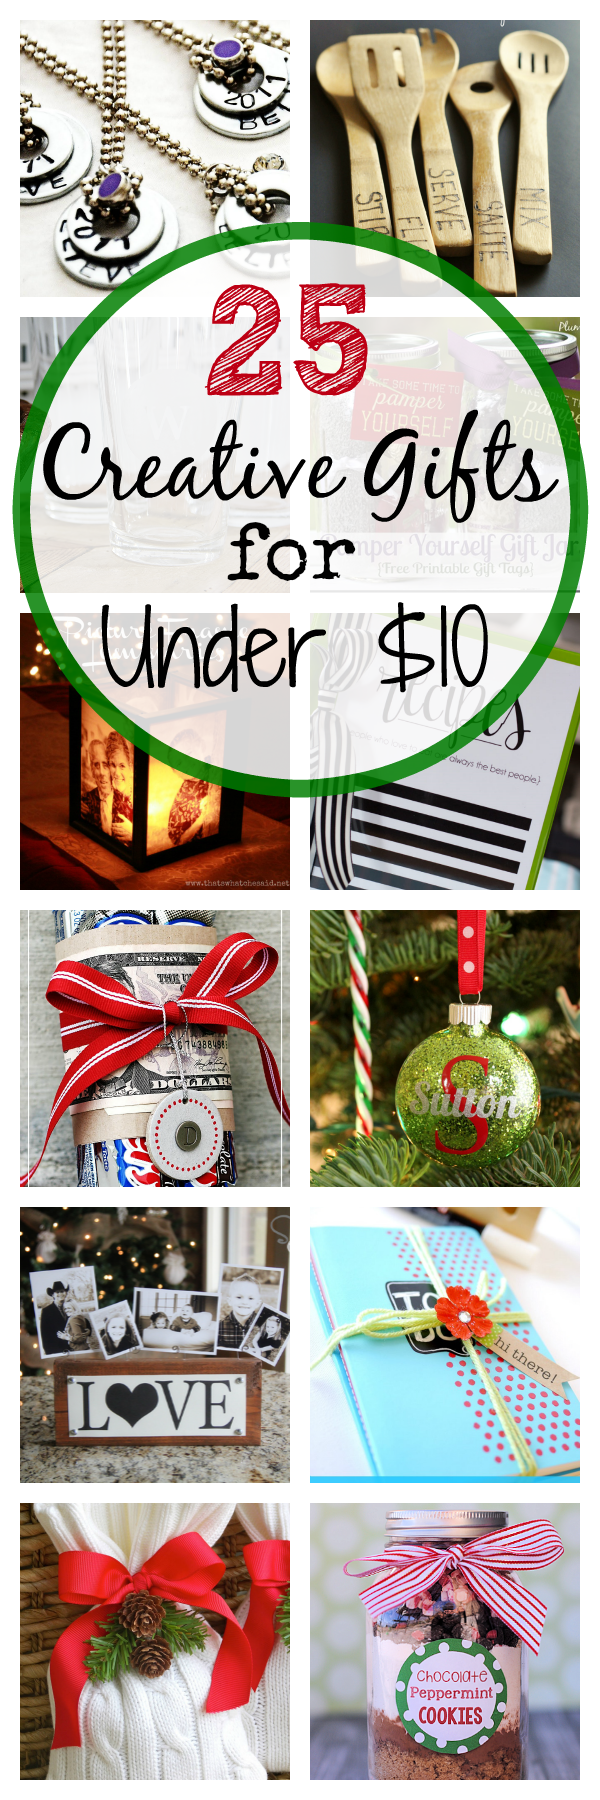 25 Creative and Cheap Christmas Gifts that Cost Less than $10-These cute Christmas gift ideas are fun to give to neighbors or coworkers or friends! #christmas #gifts #christmasgifts #neighborgifts